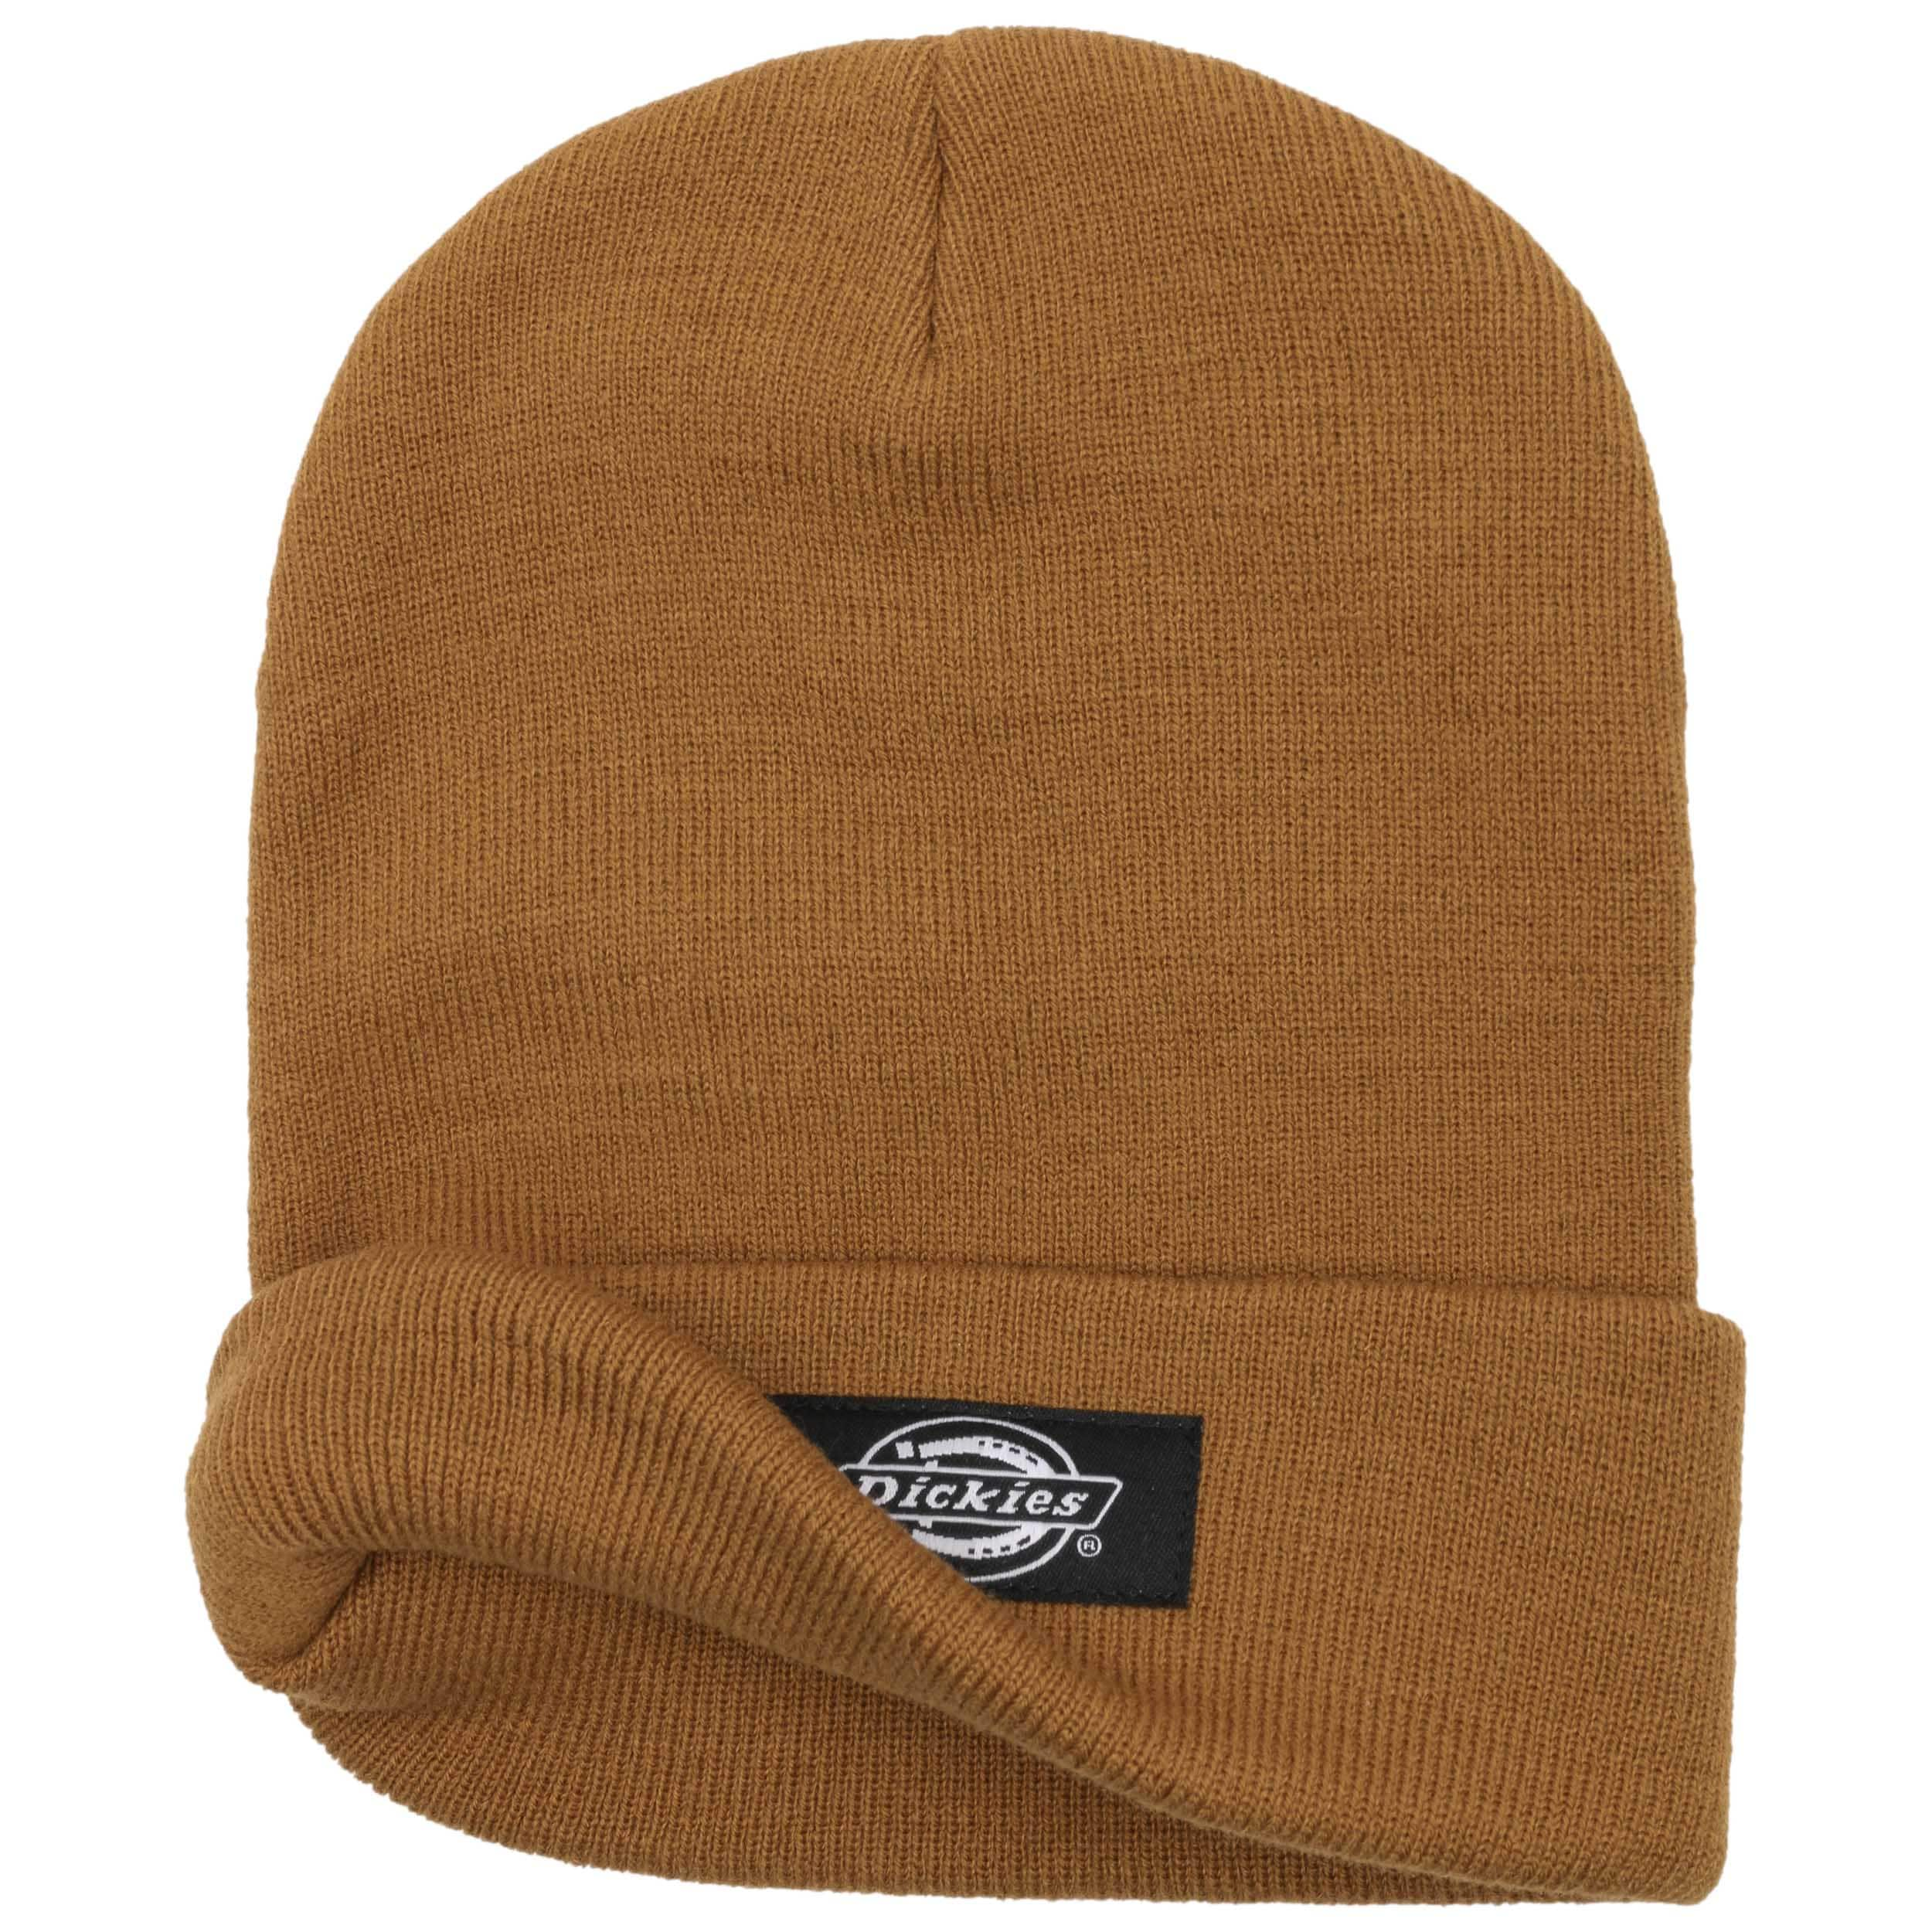 plus récent 01924 61612 Bonnet Beanie Yonker by Dickies